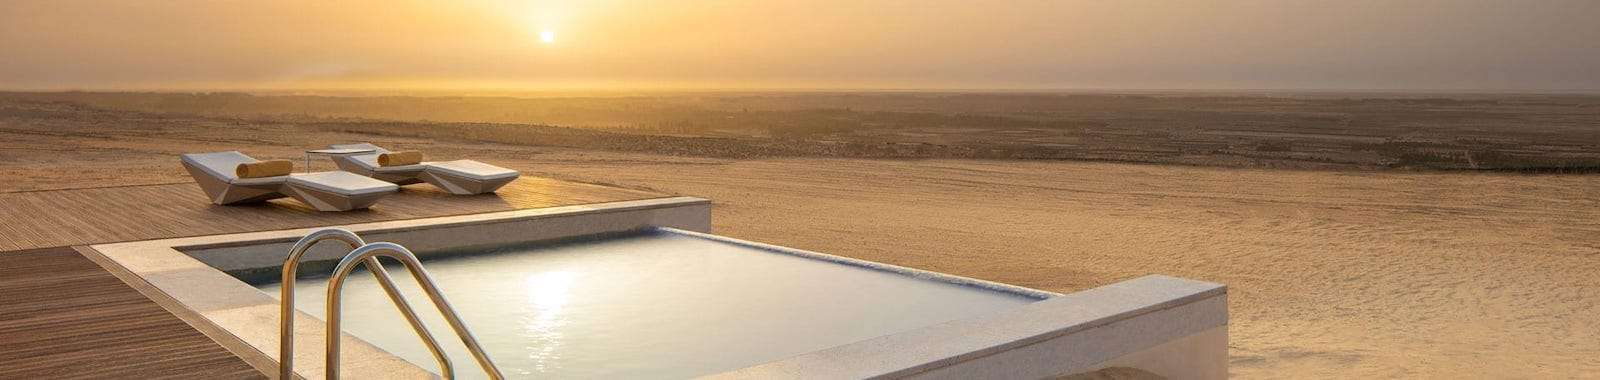 Private pool at the Anantara Tozeur Resort - the best place to stay in southern Tunisia